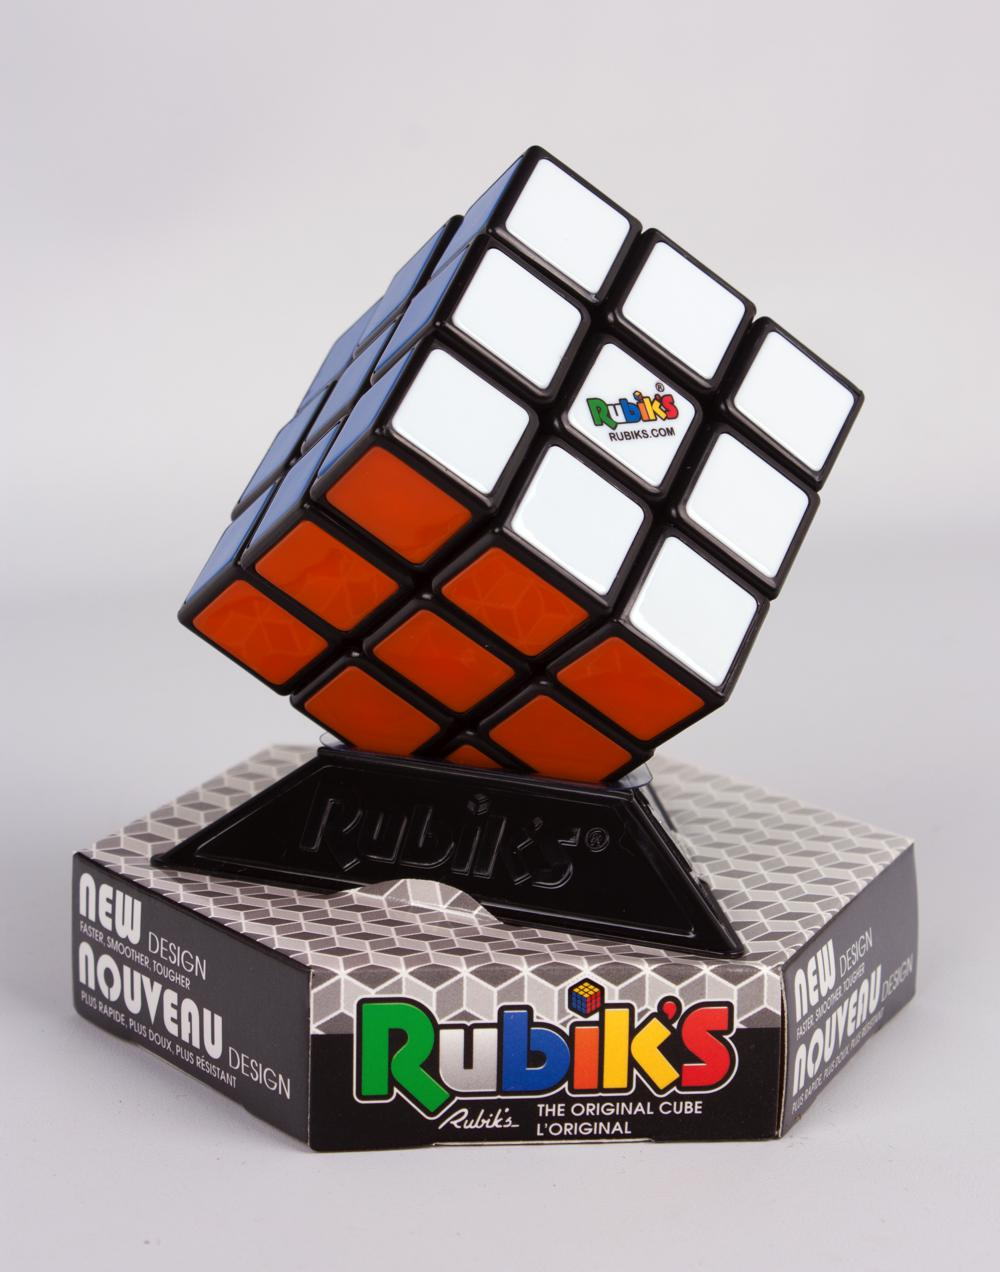 jeu cube rubik s 3x3 club jouet achat de jeux et jouets. Black Bedroom Furniture Sets. Home Design Ideas